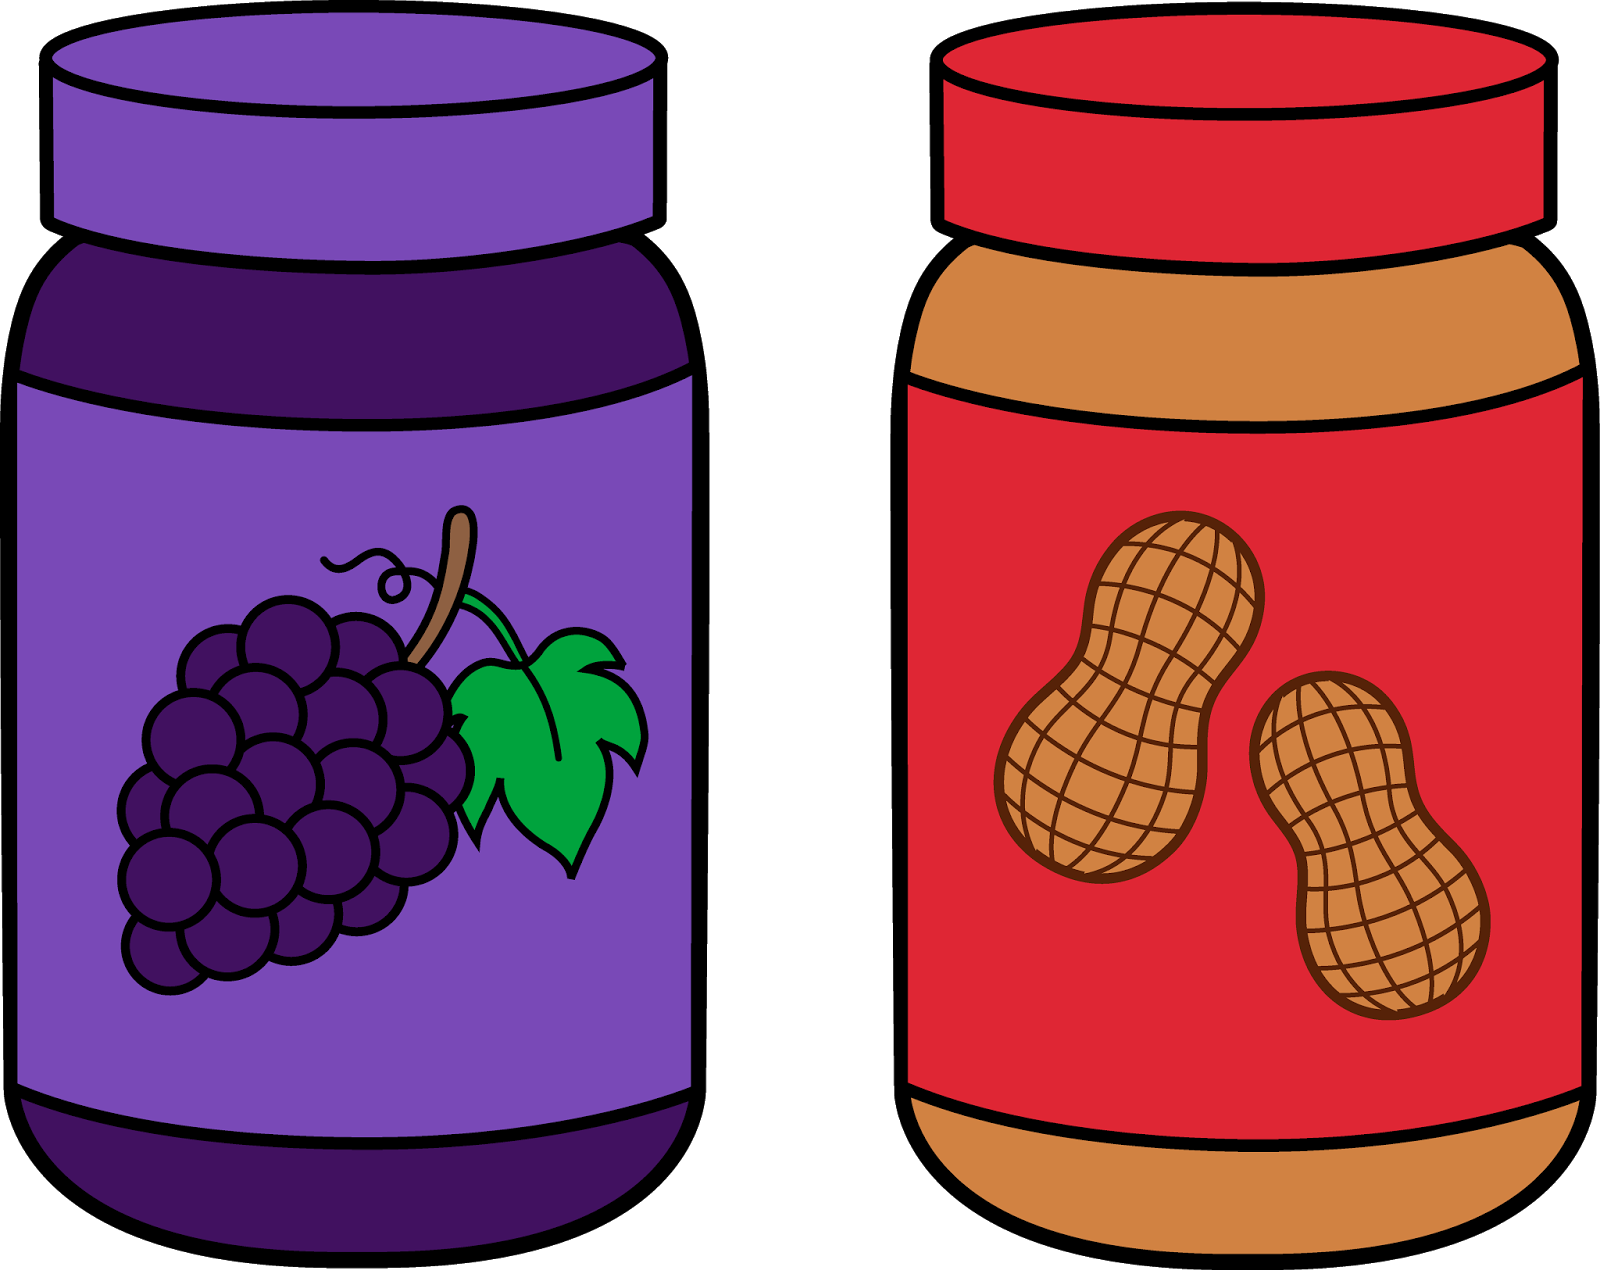 Nut clipart peanut butter. Lewis room project second